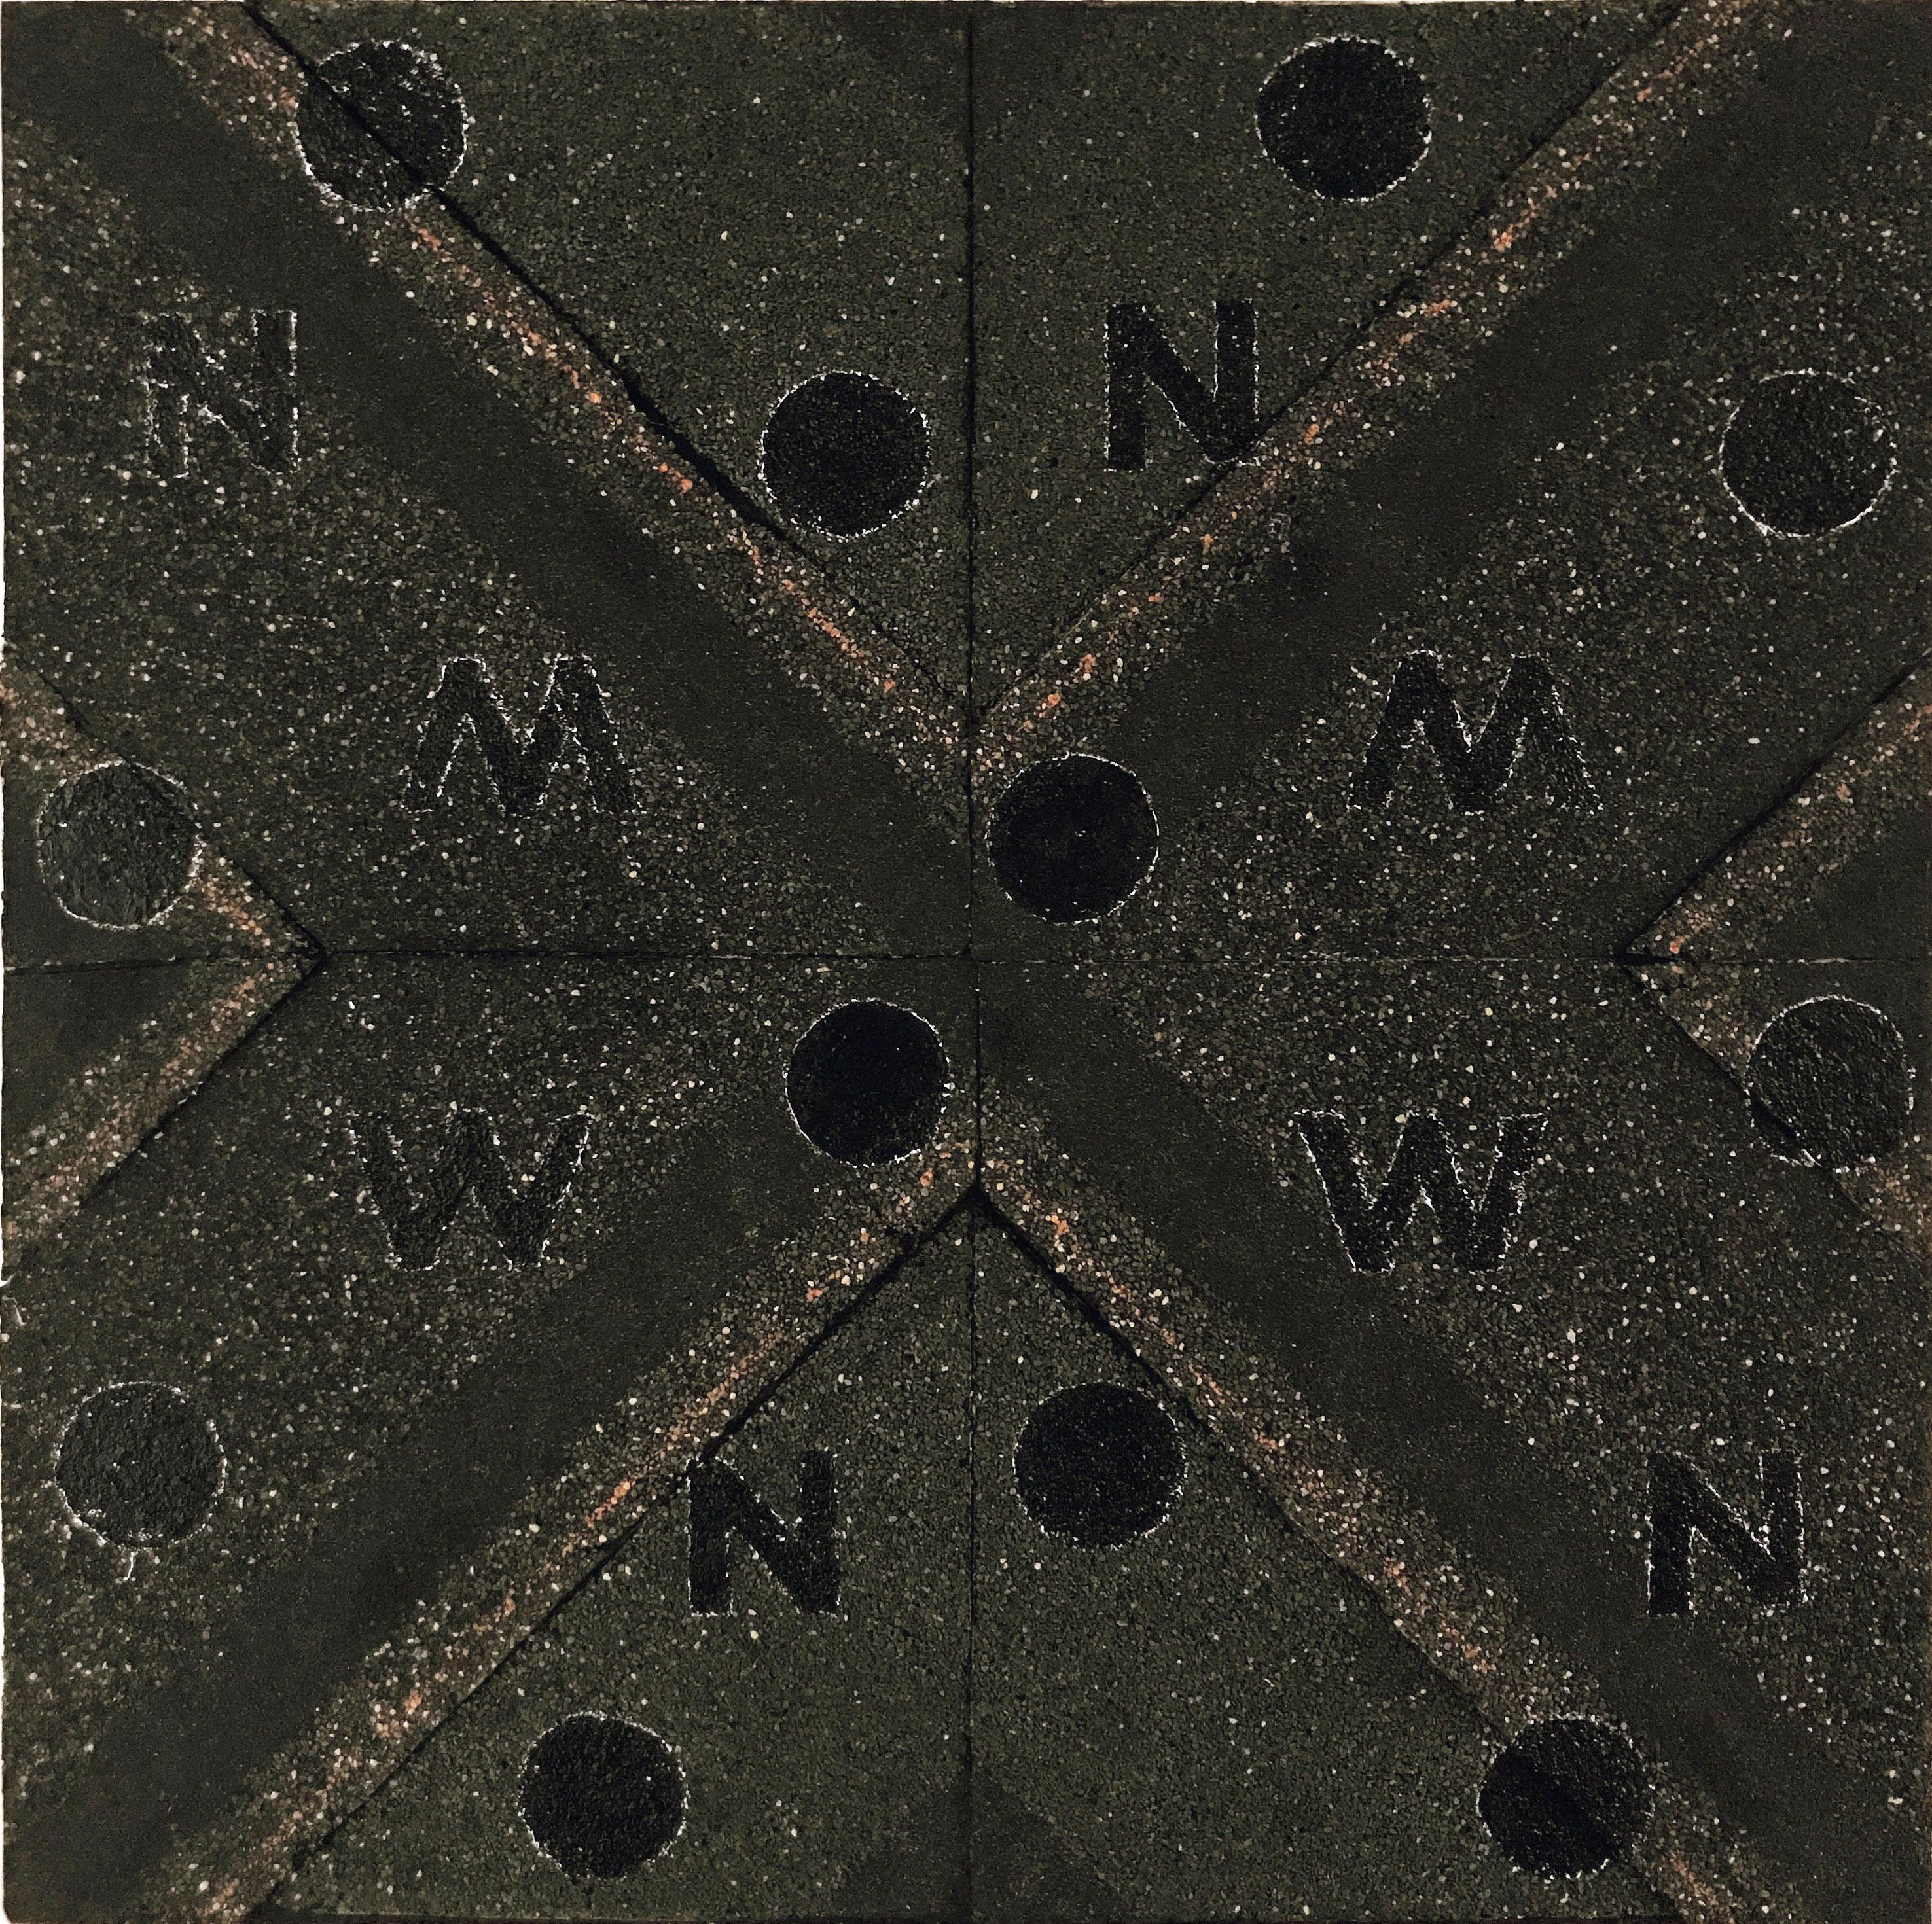 NOW IV - contemporary abstract mixed media painting w/ black asphalt & text